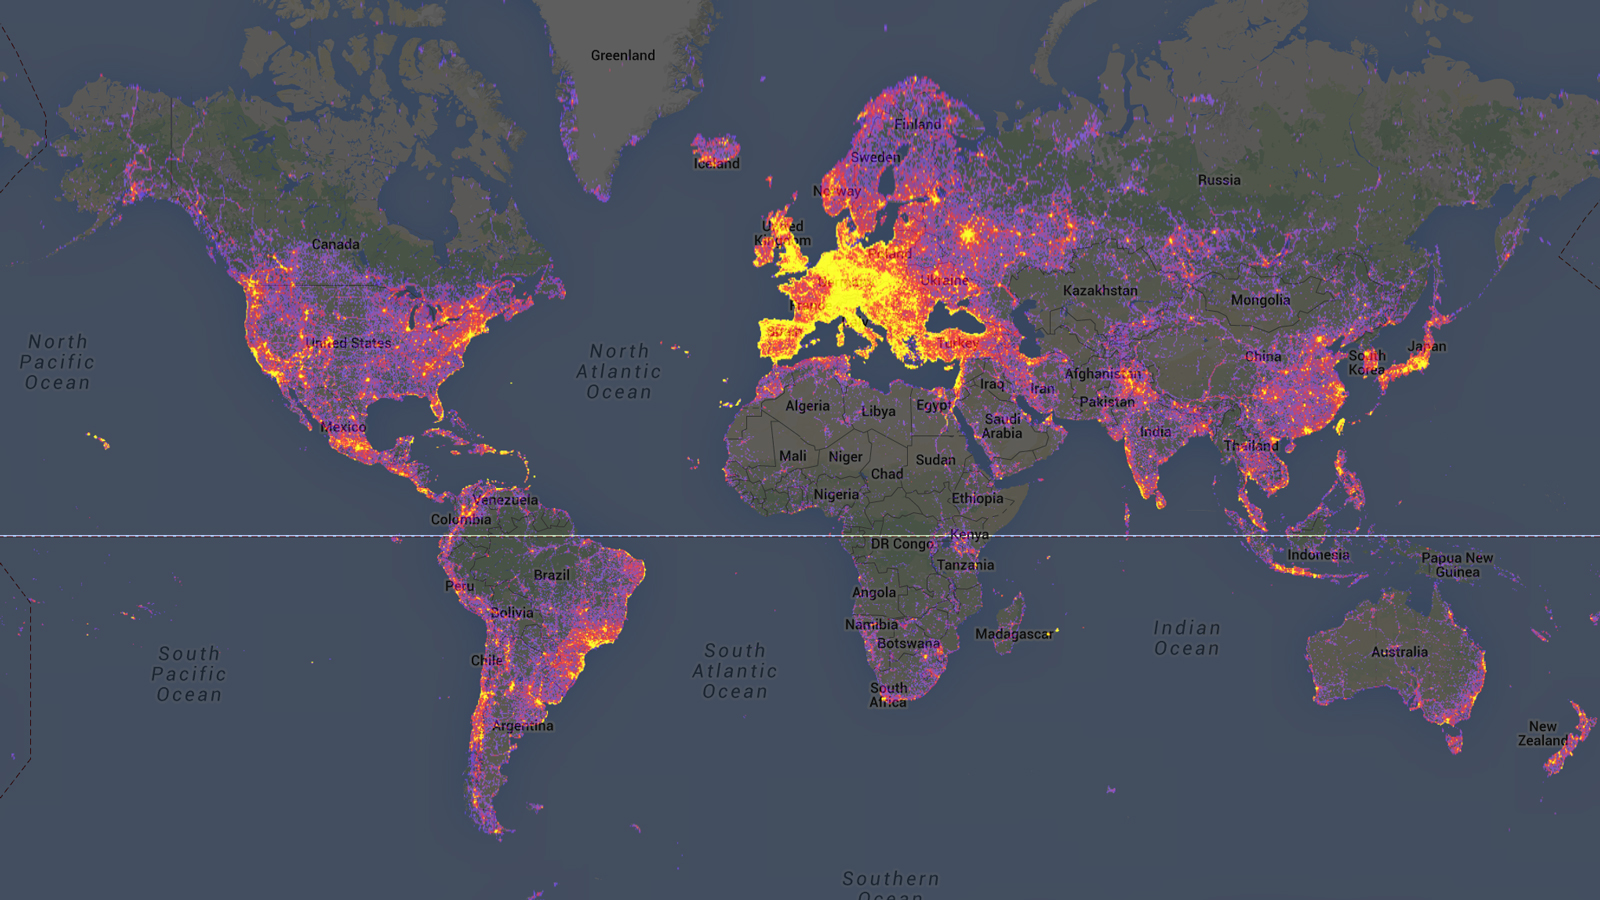 the most photographed places in the world, google maps' panoramio, 2013